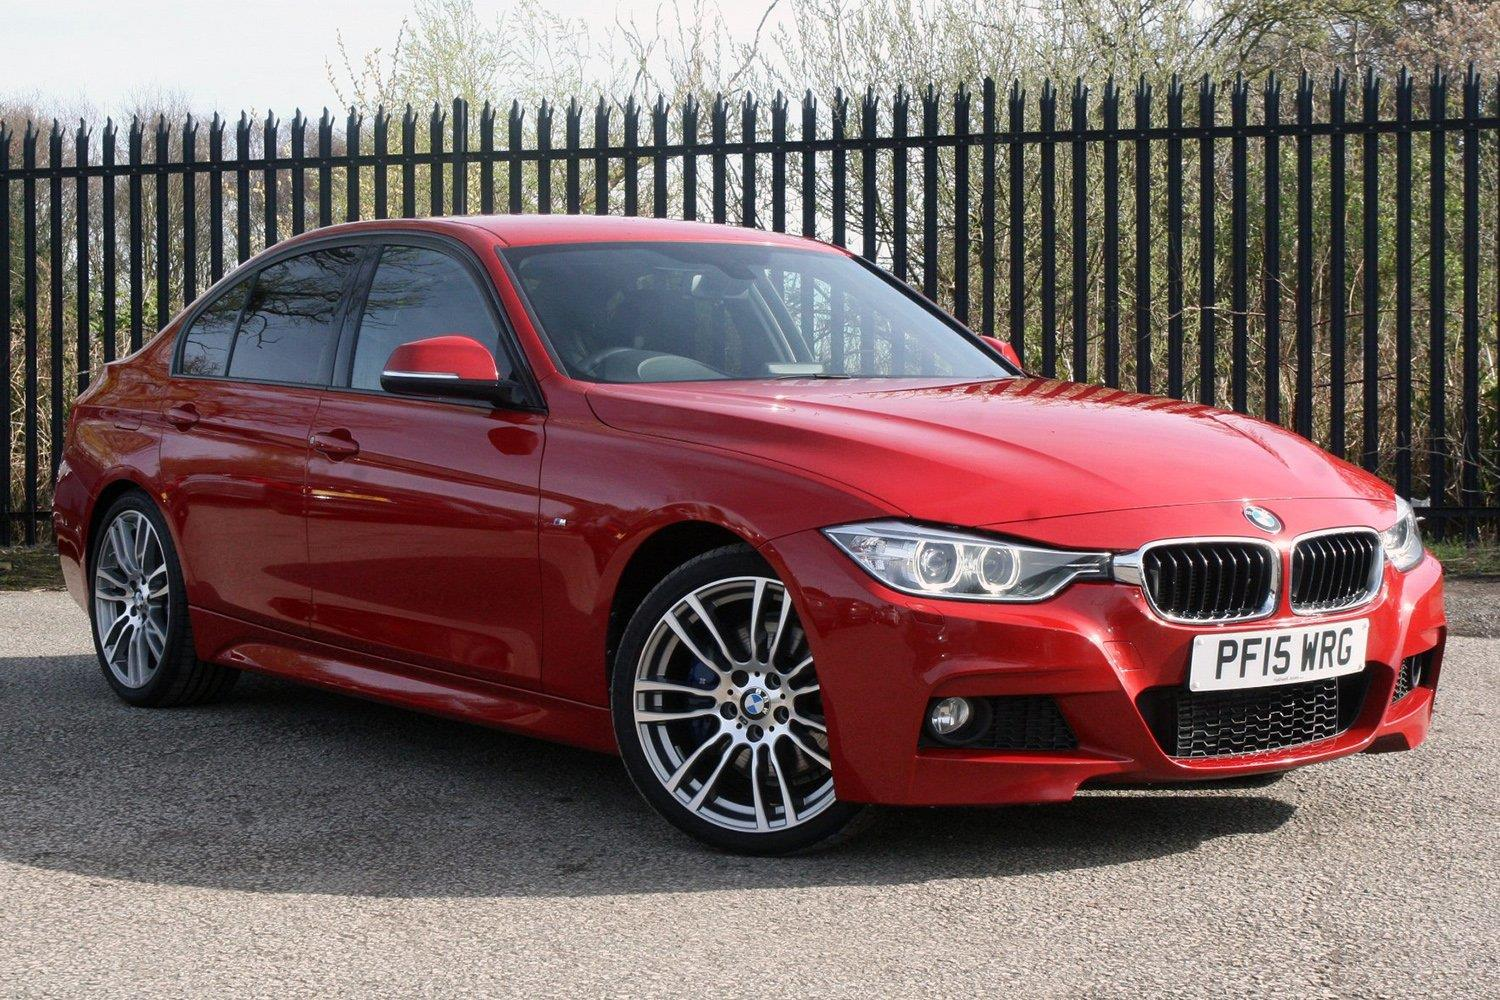 BMW 3 Series Saloon PF15WRG - Image 3